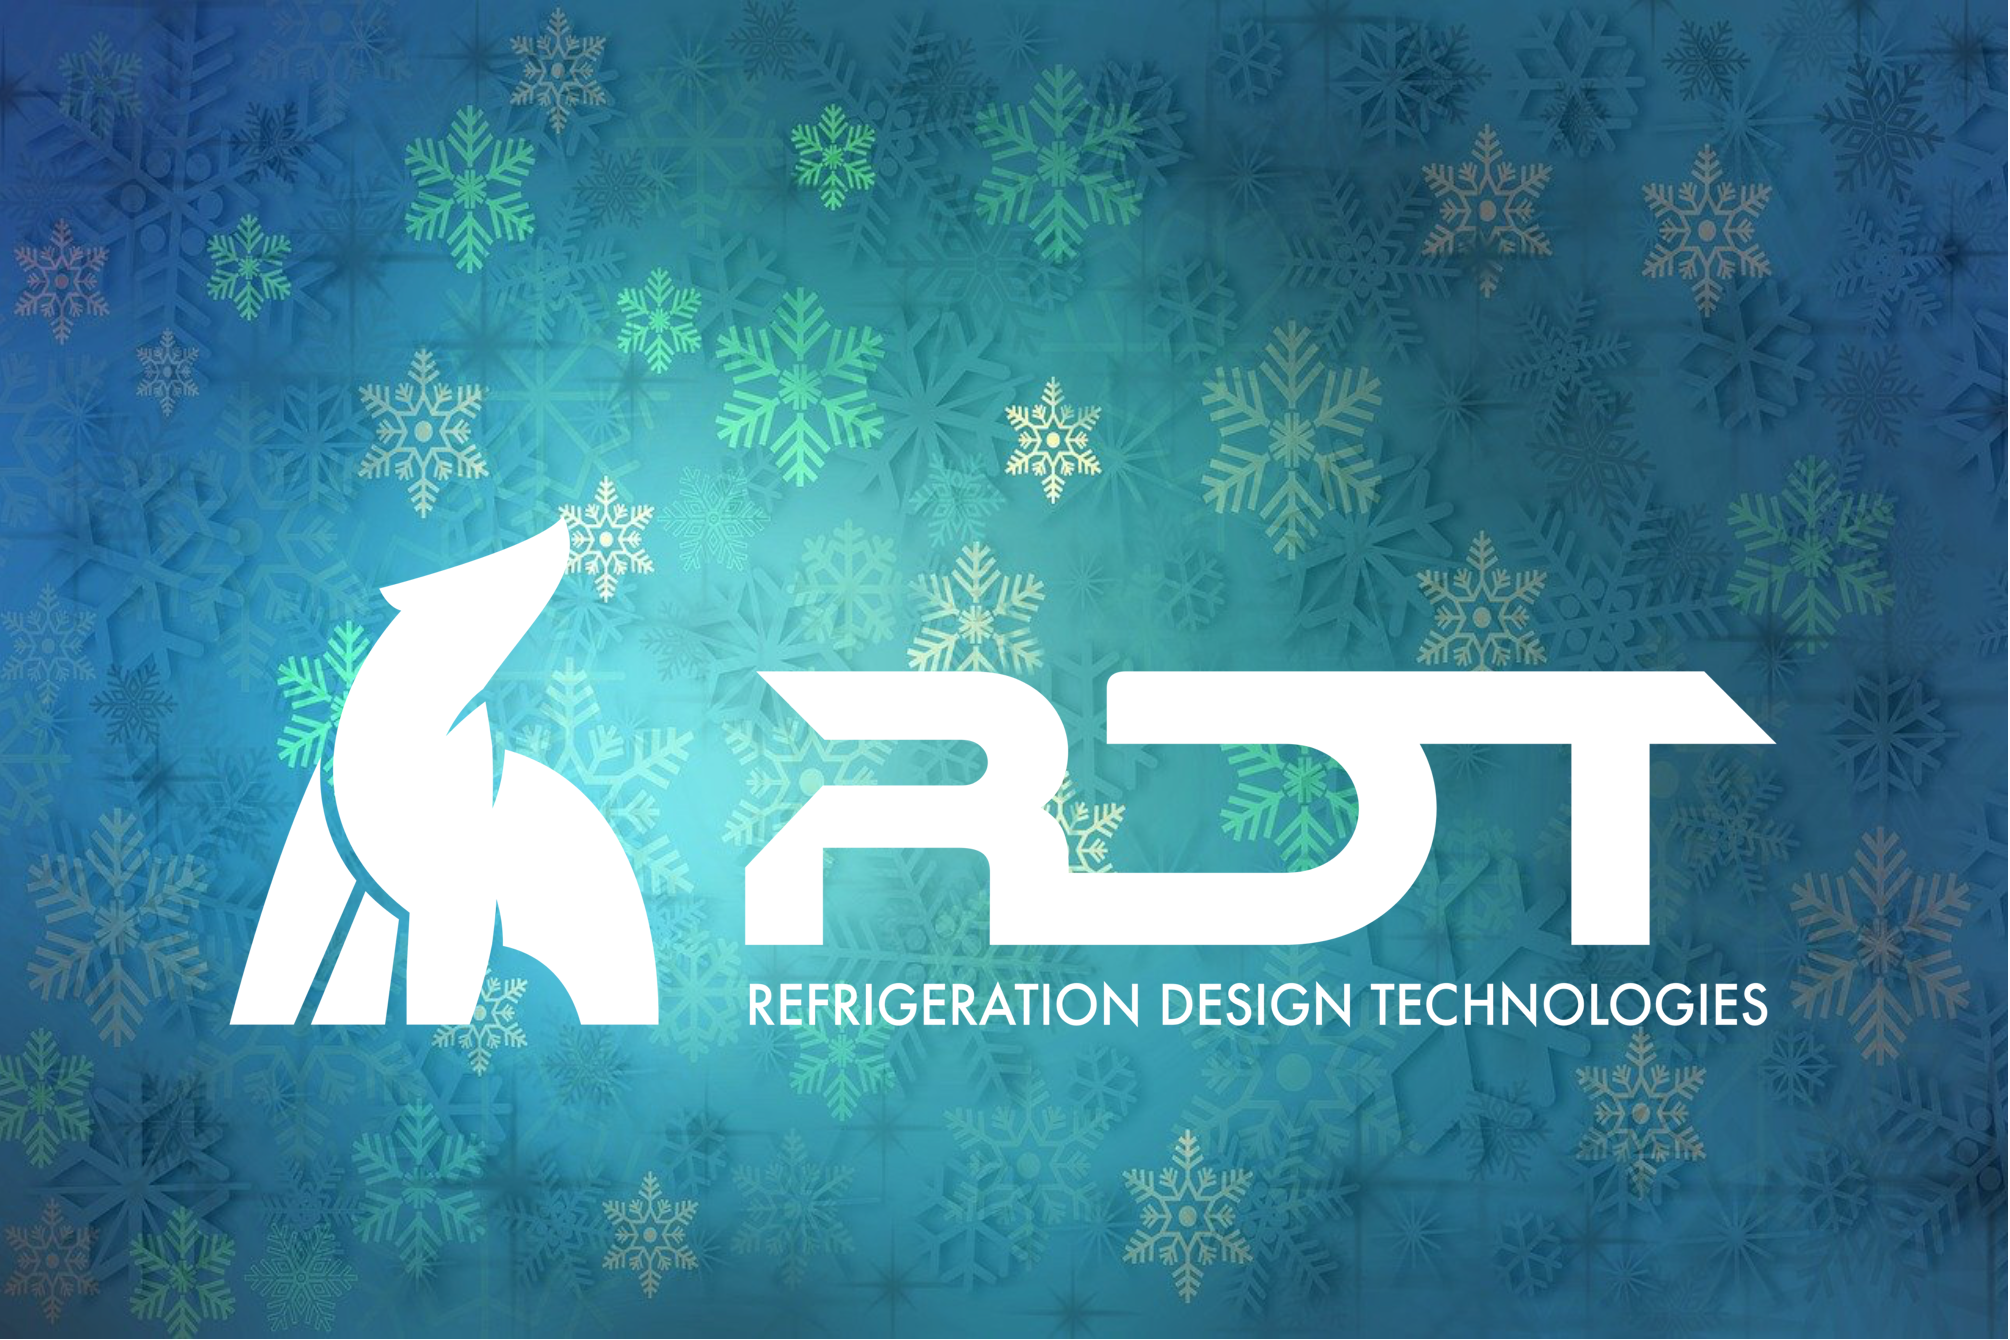 An Update on the DOE's Refrigeration Regulations